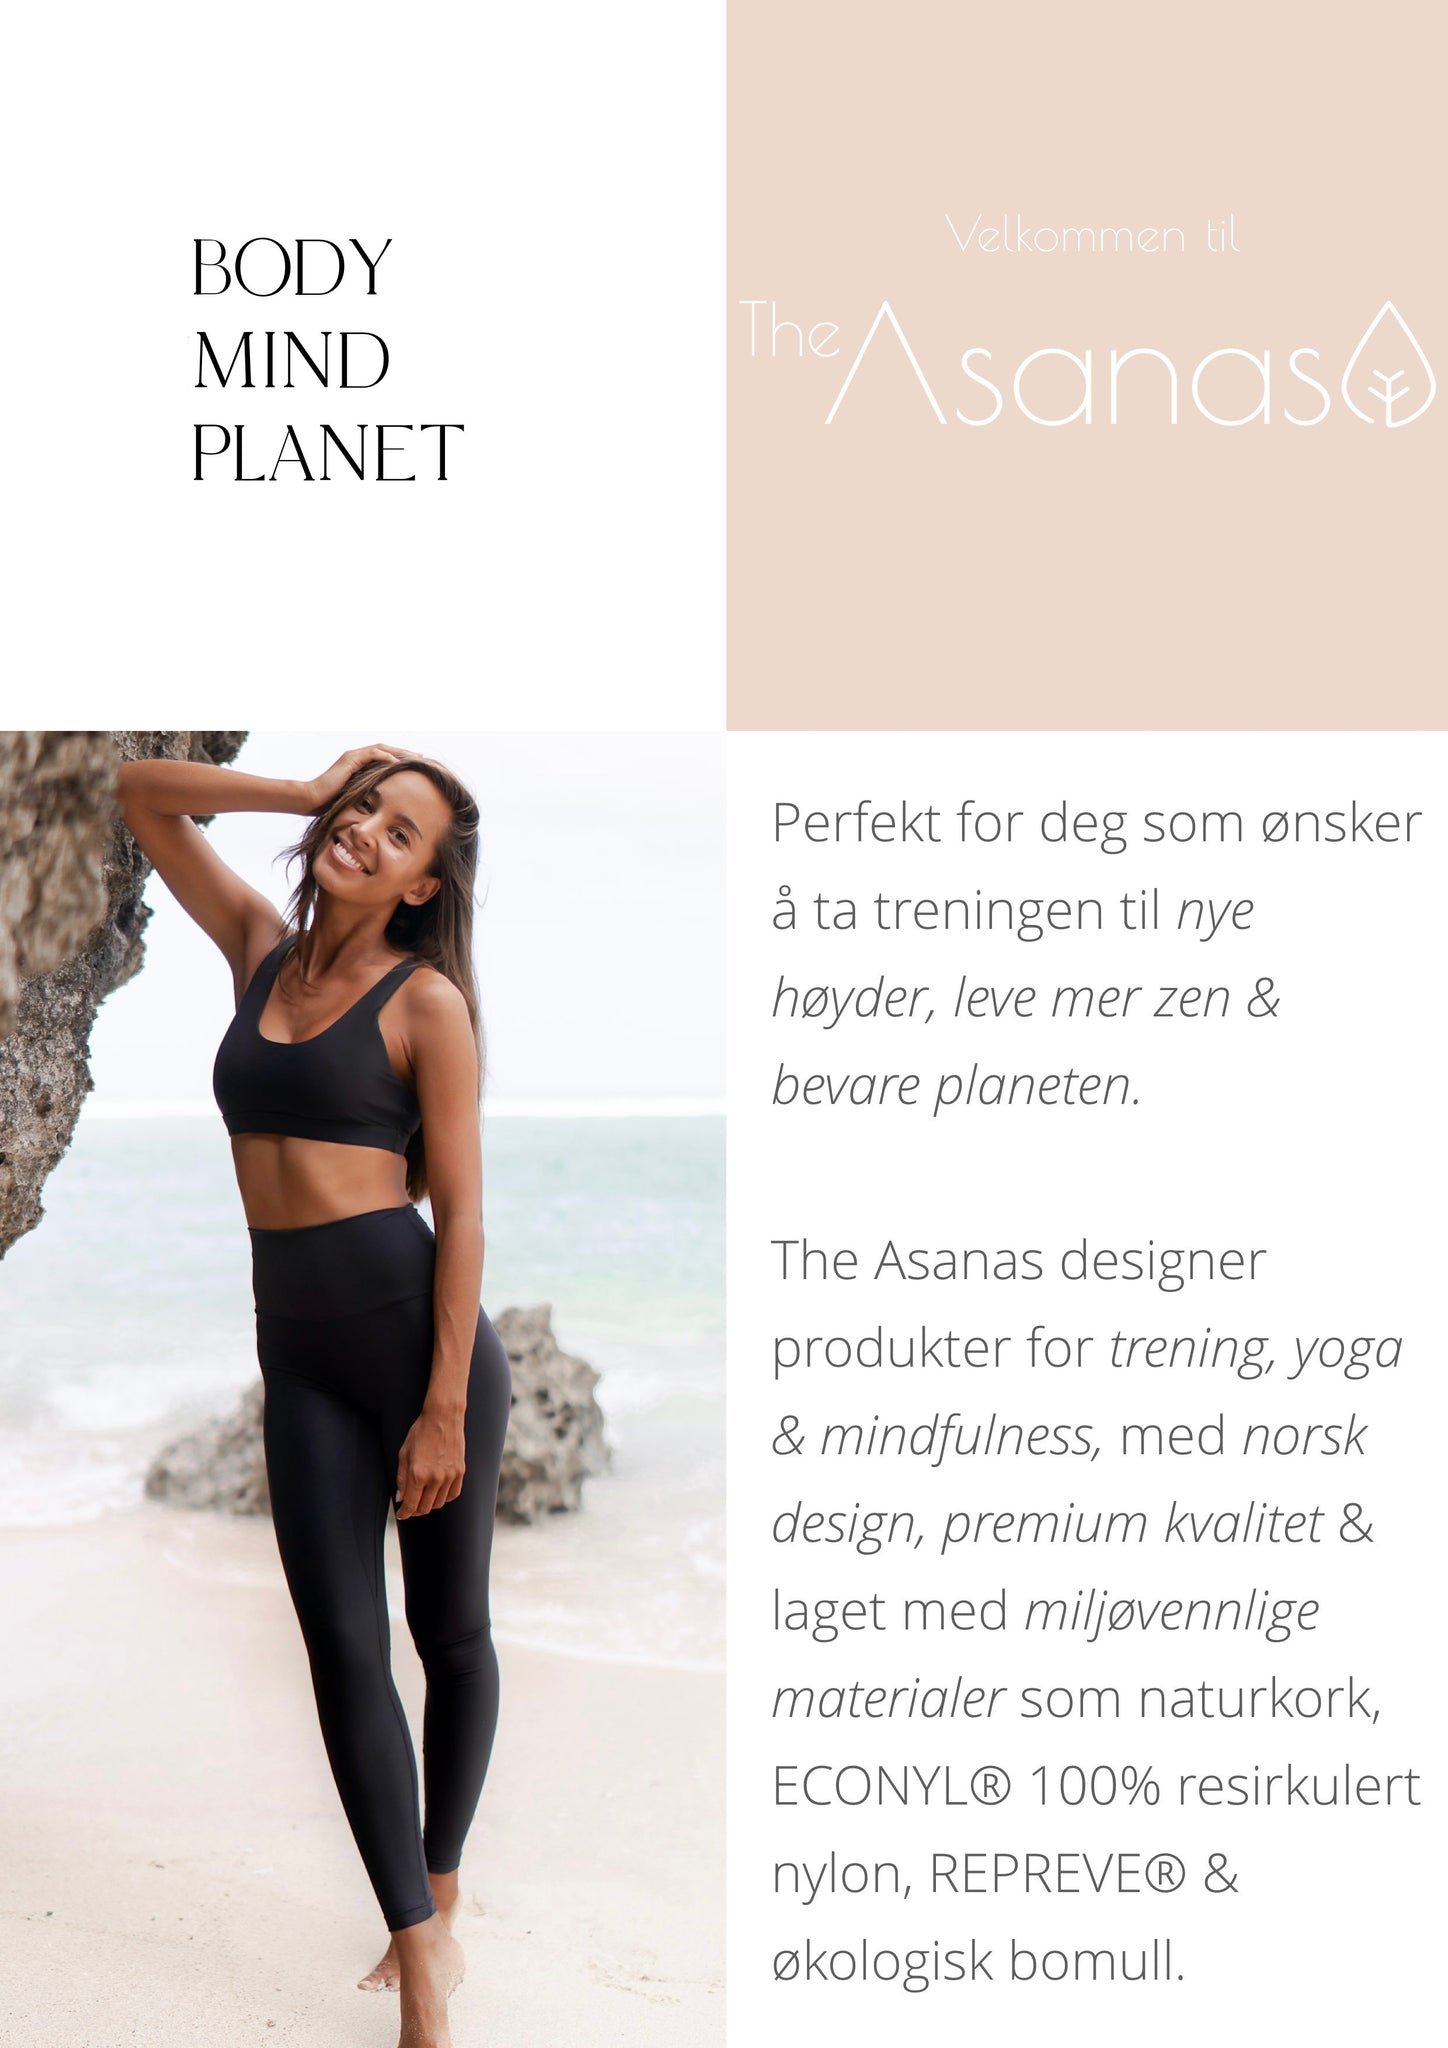 The Asanas tights sportsbh treningsklær kork yogamatte